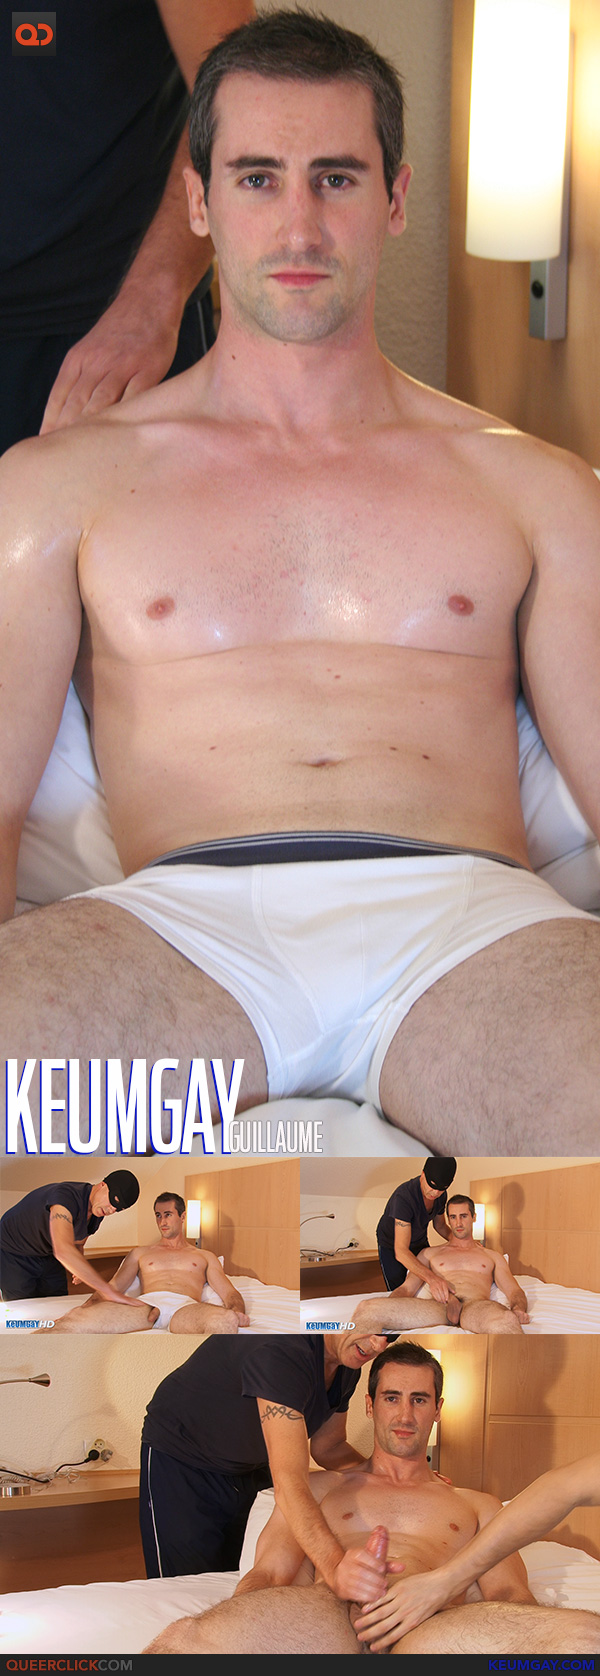 KeumGay: Guillaume and 4 Hands